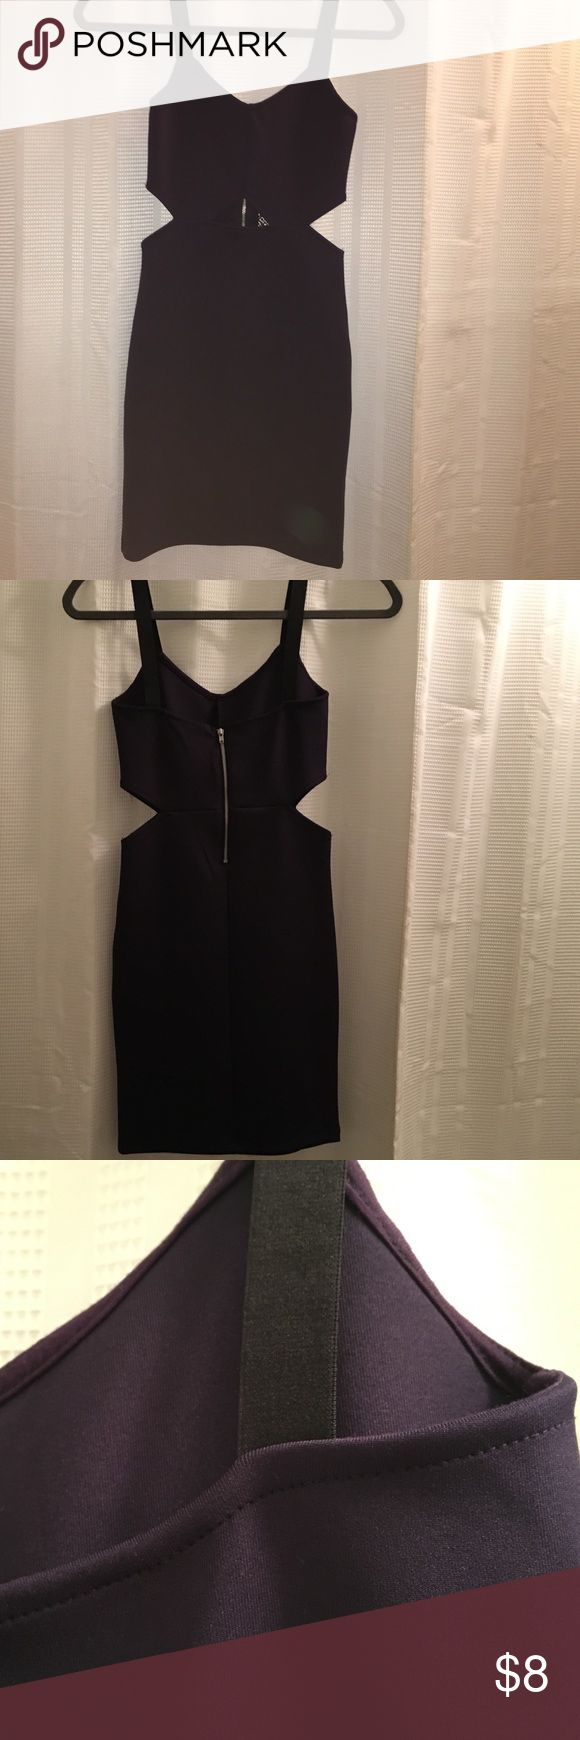 Dark purple body con dress with cut outs Body con dress with cuts outs. It's dark purple with black straps. Never worn and in perfect condition H&M Dresses Mini